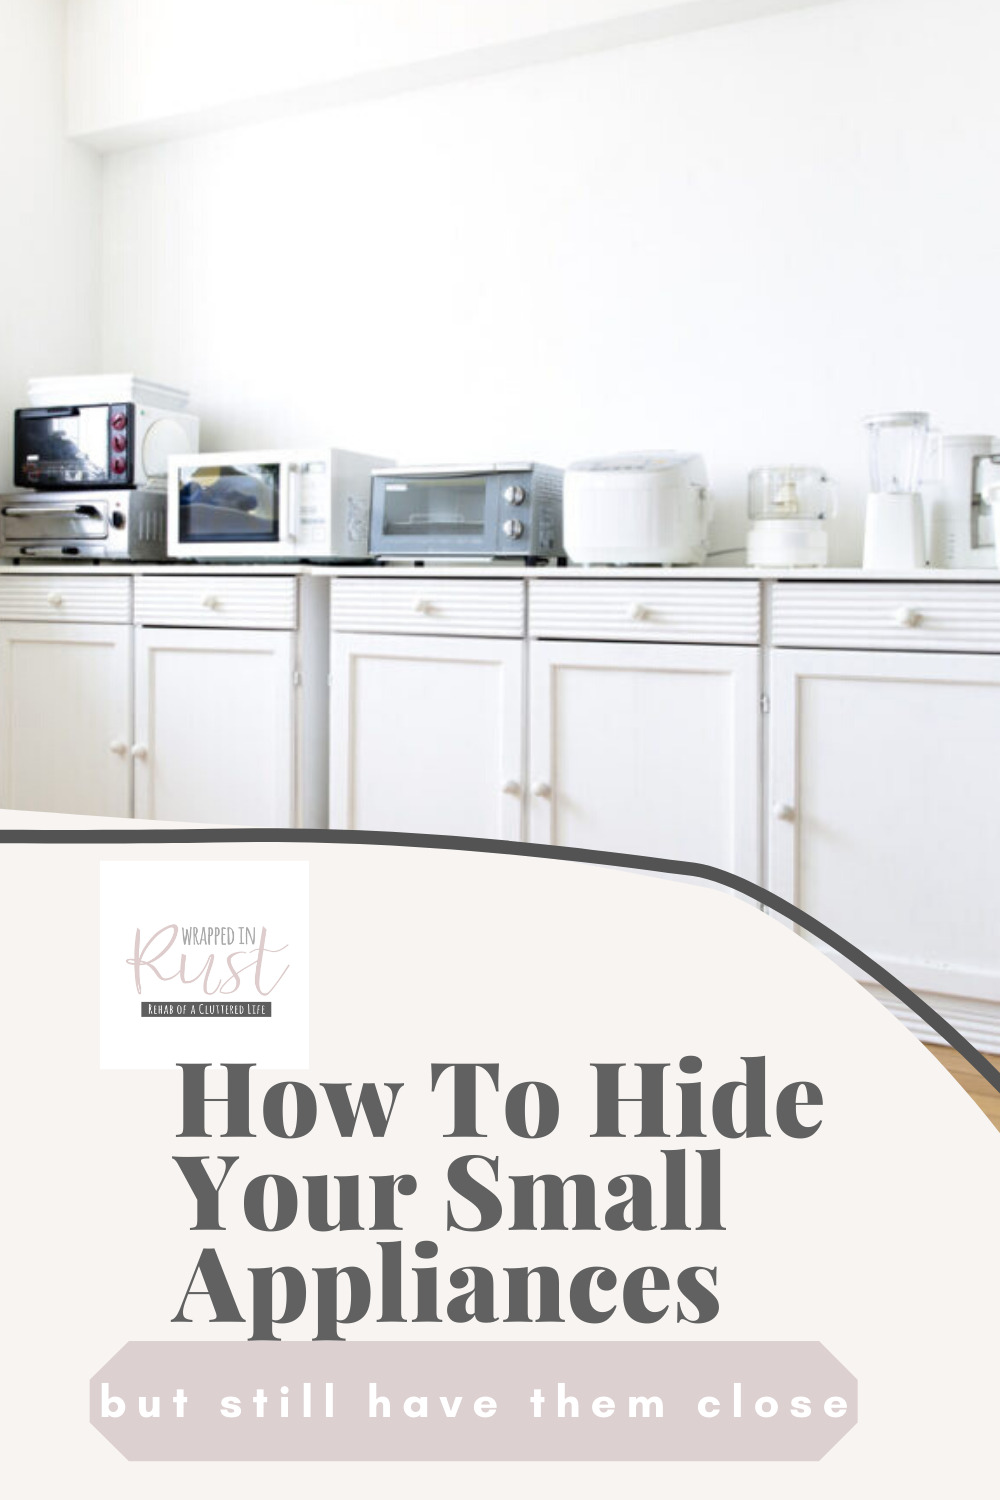 Ideas to help you hide your small appliances without using up all your counter space. Small appliances are handy, but not if you have to go digging for them when you need one. See ideas to help you hide them in convenient places. #wrappedinrustblog #hideyoursmallappliances